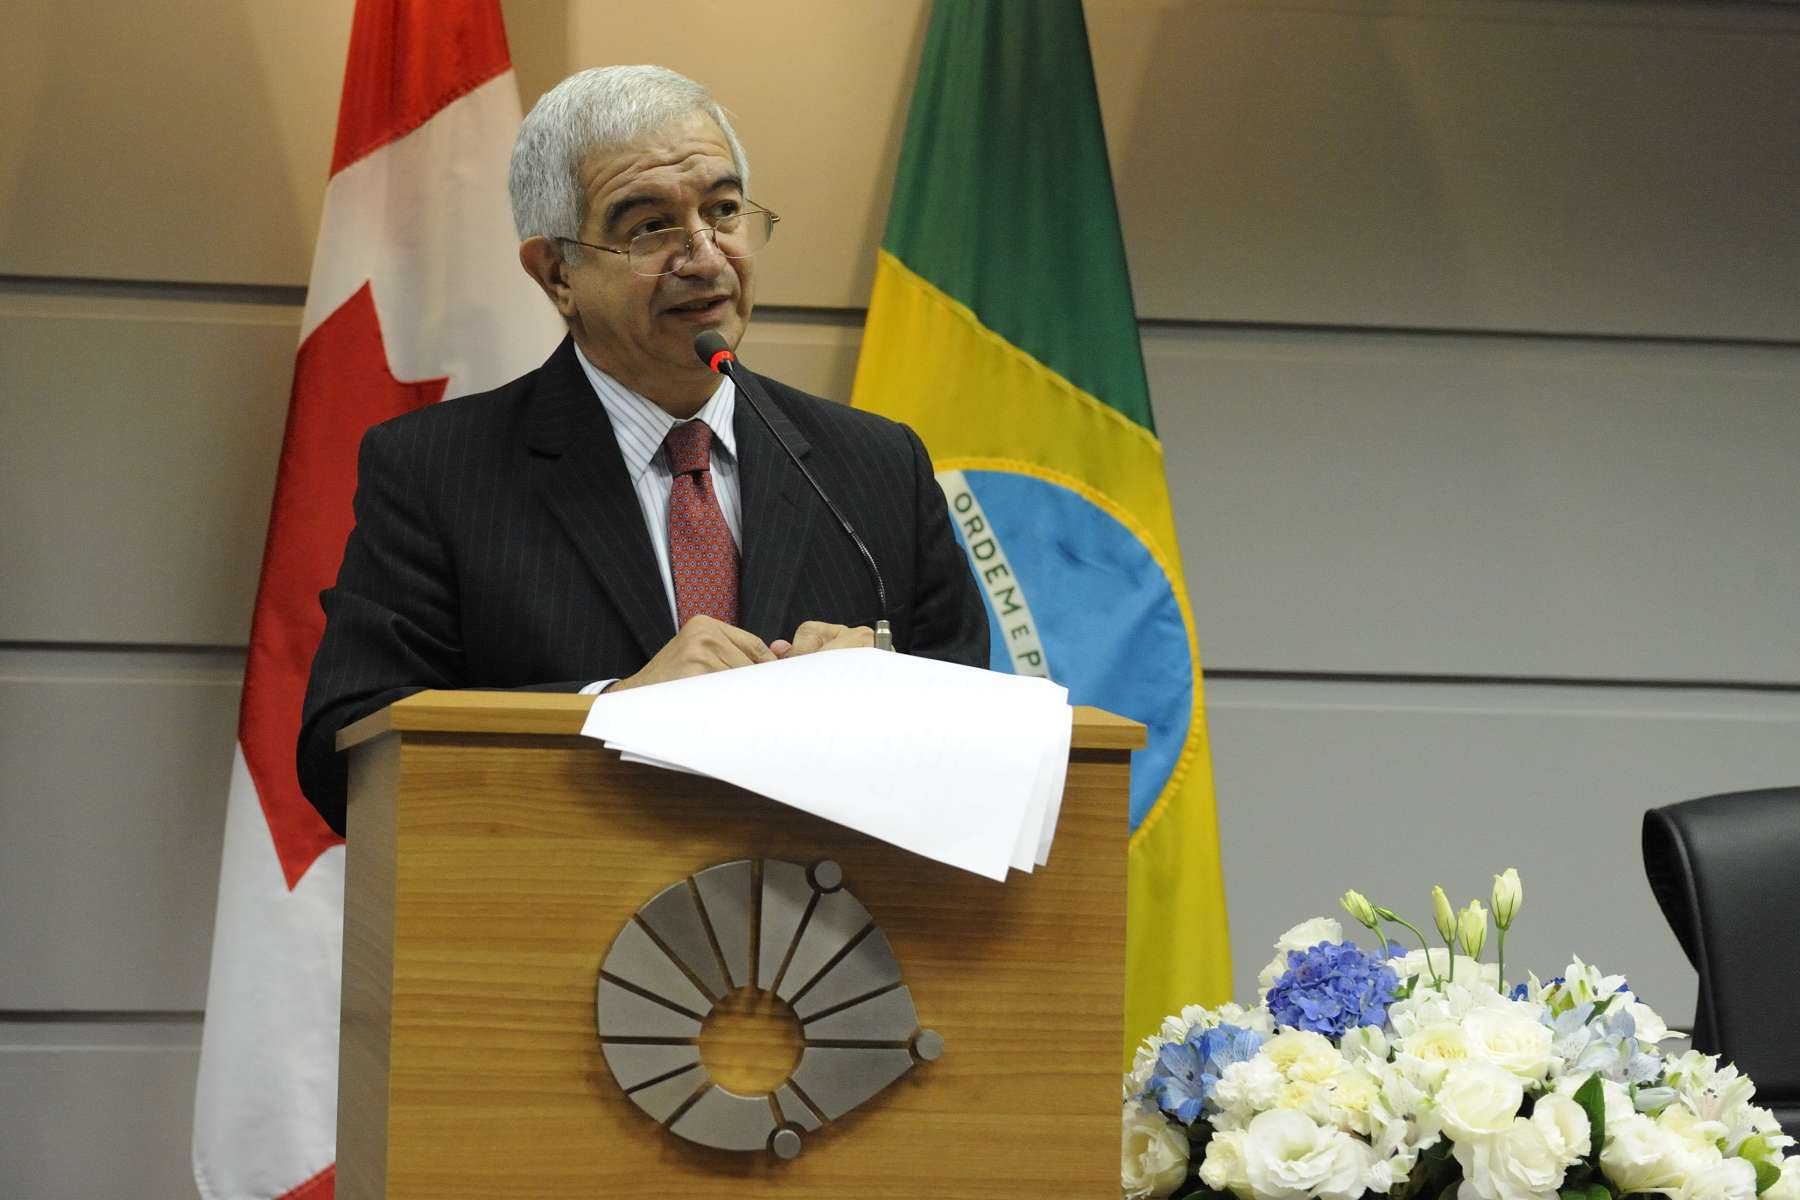 Fernando Costa, President of UNICAMP, addressed the participants.